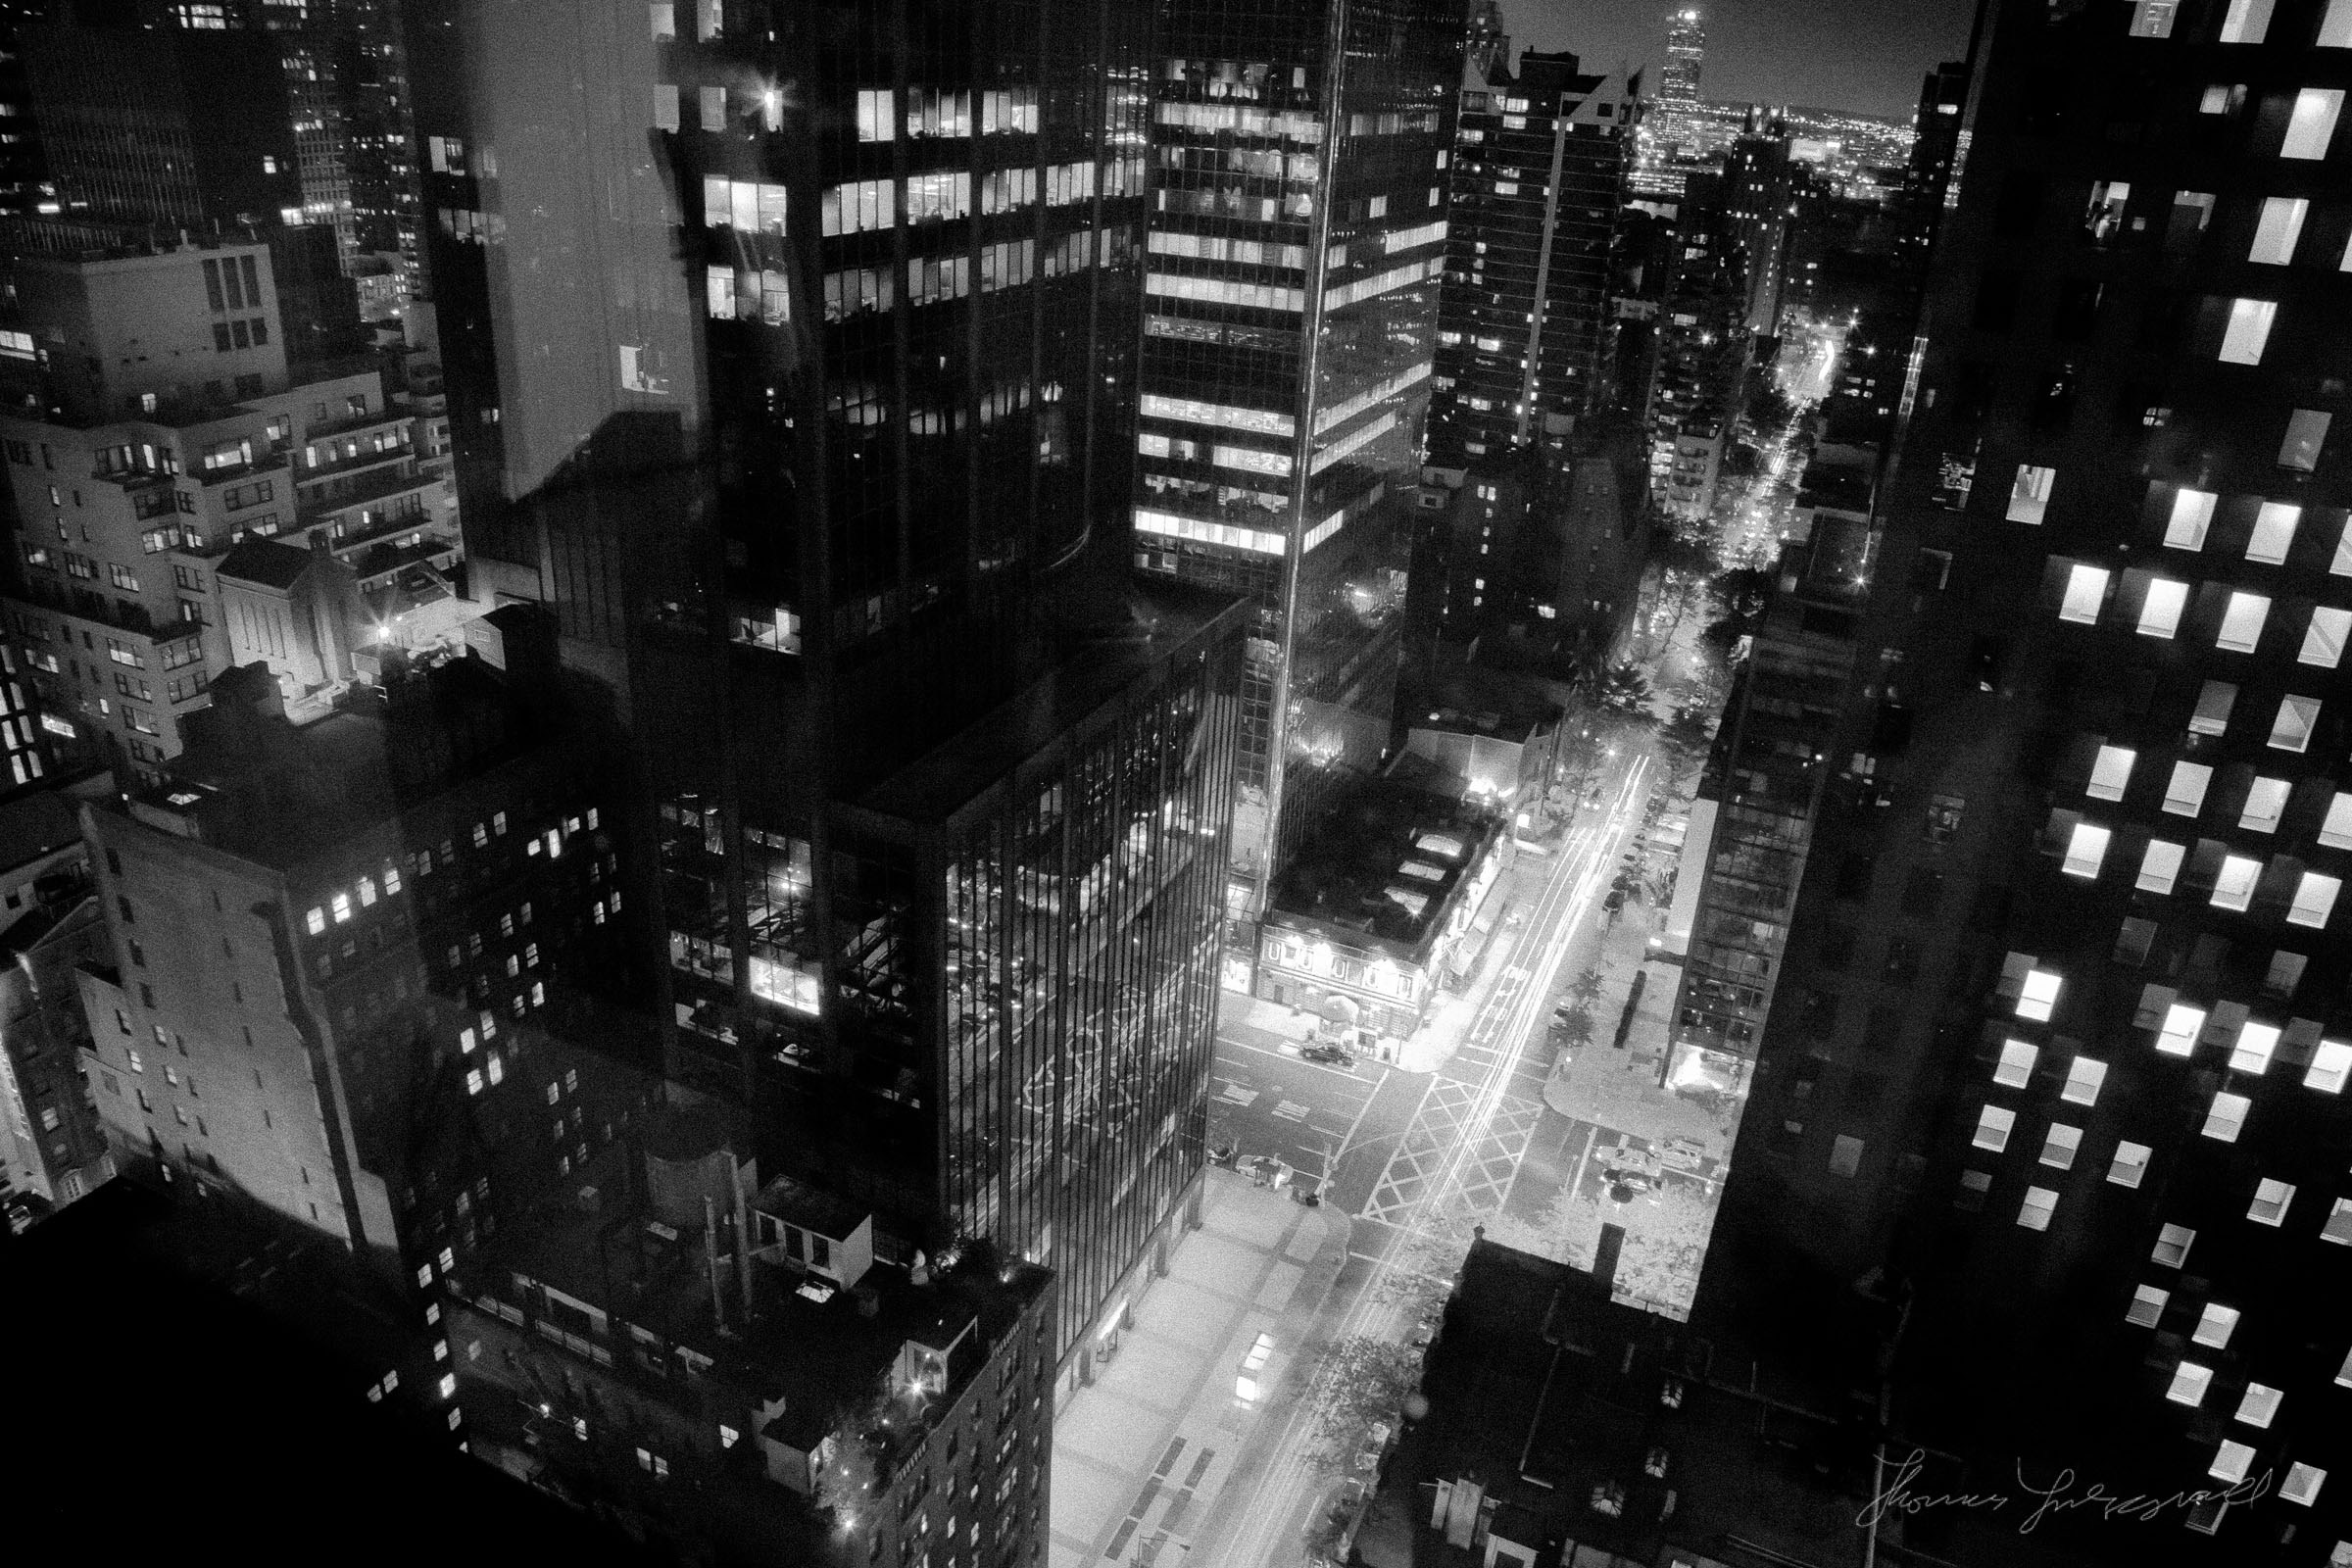 New York City Junction from Above at night